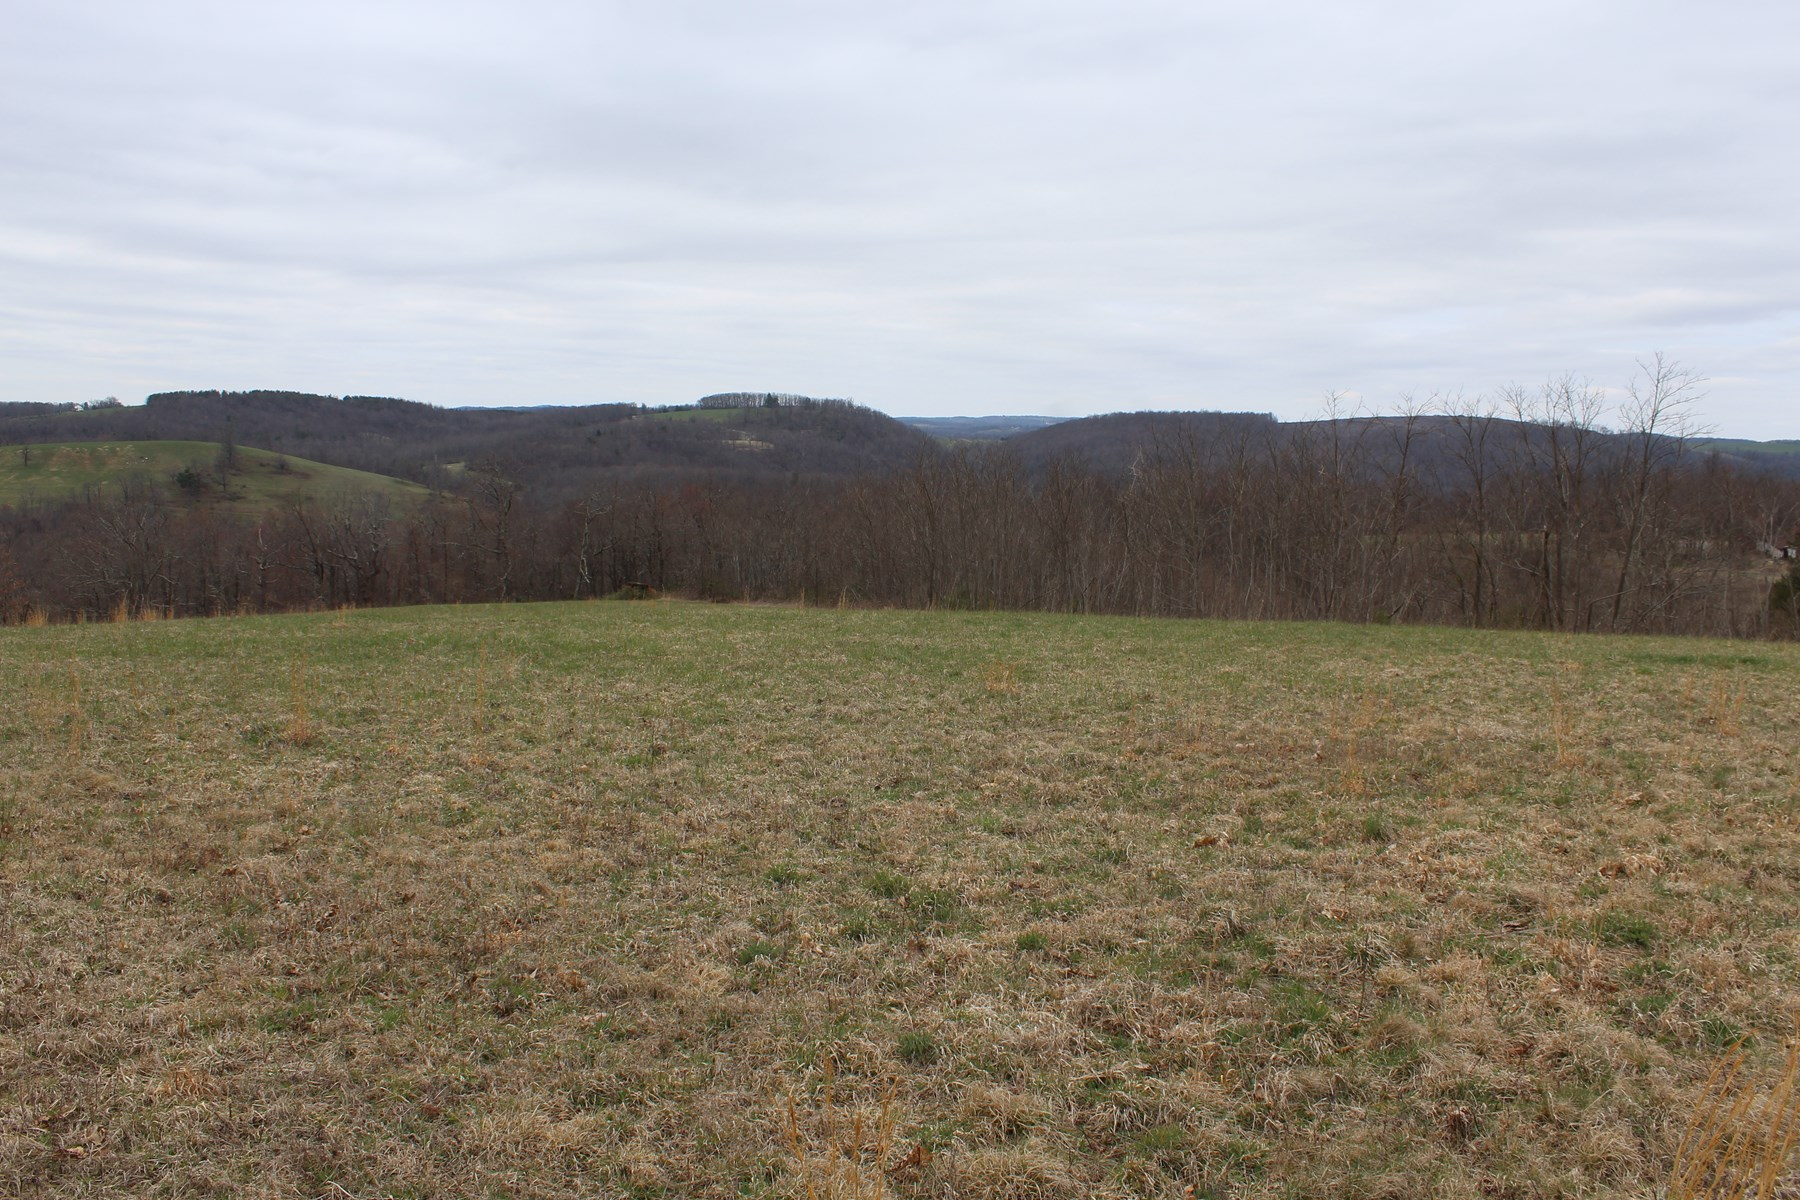 30.6 ACRES OF LAND FOR SELL IN PATRICK COUNTY, VIRGINIA